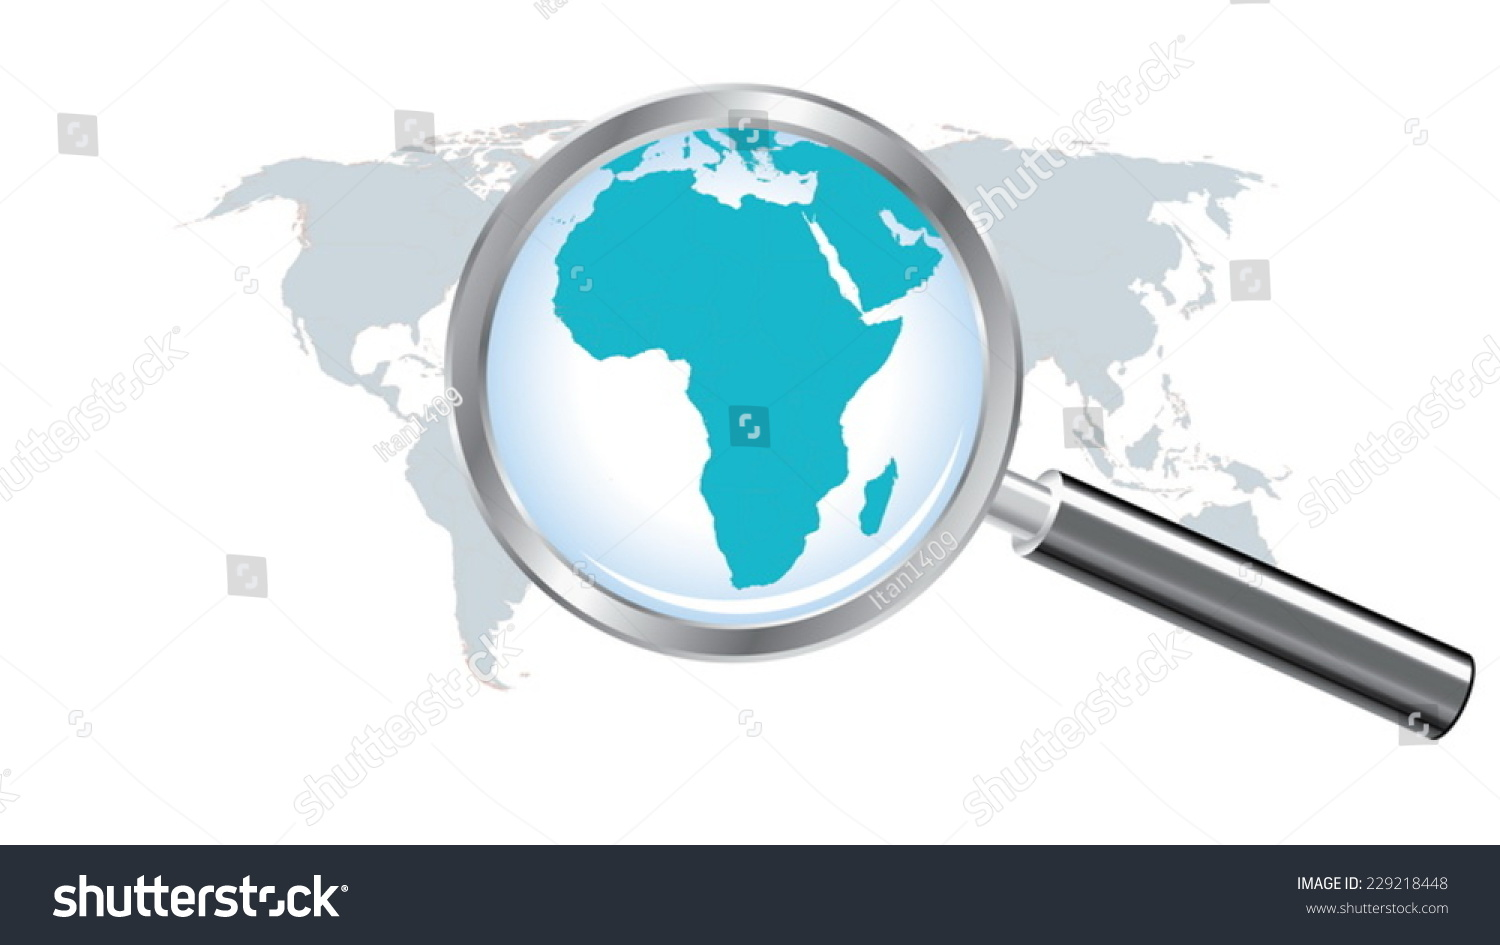 World map countries africa magnified by stock vector 229218448 world map countries with africa magnified by loupe gumiabroncs Gallery